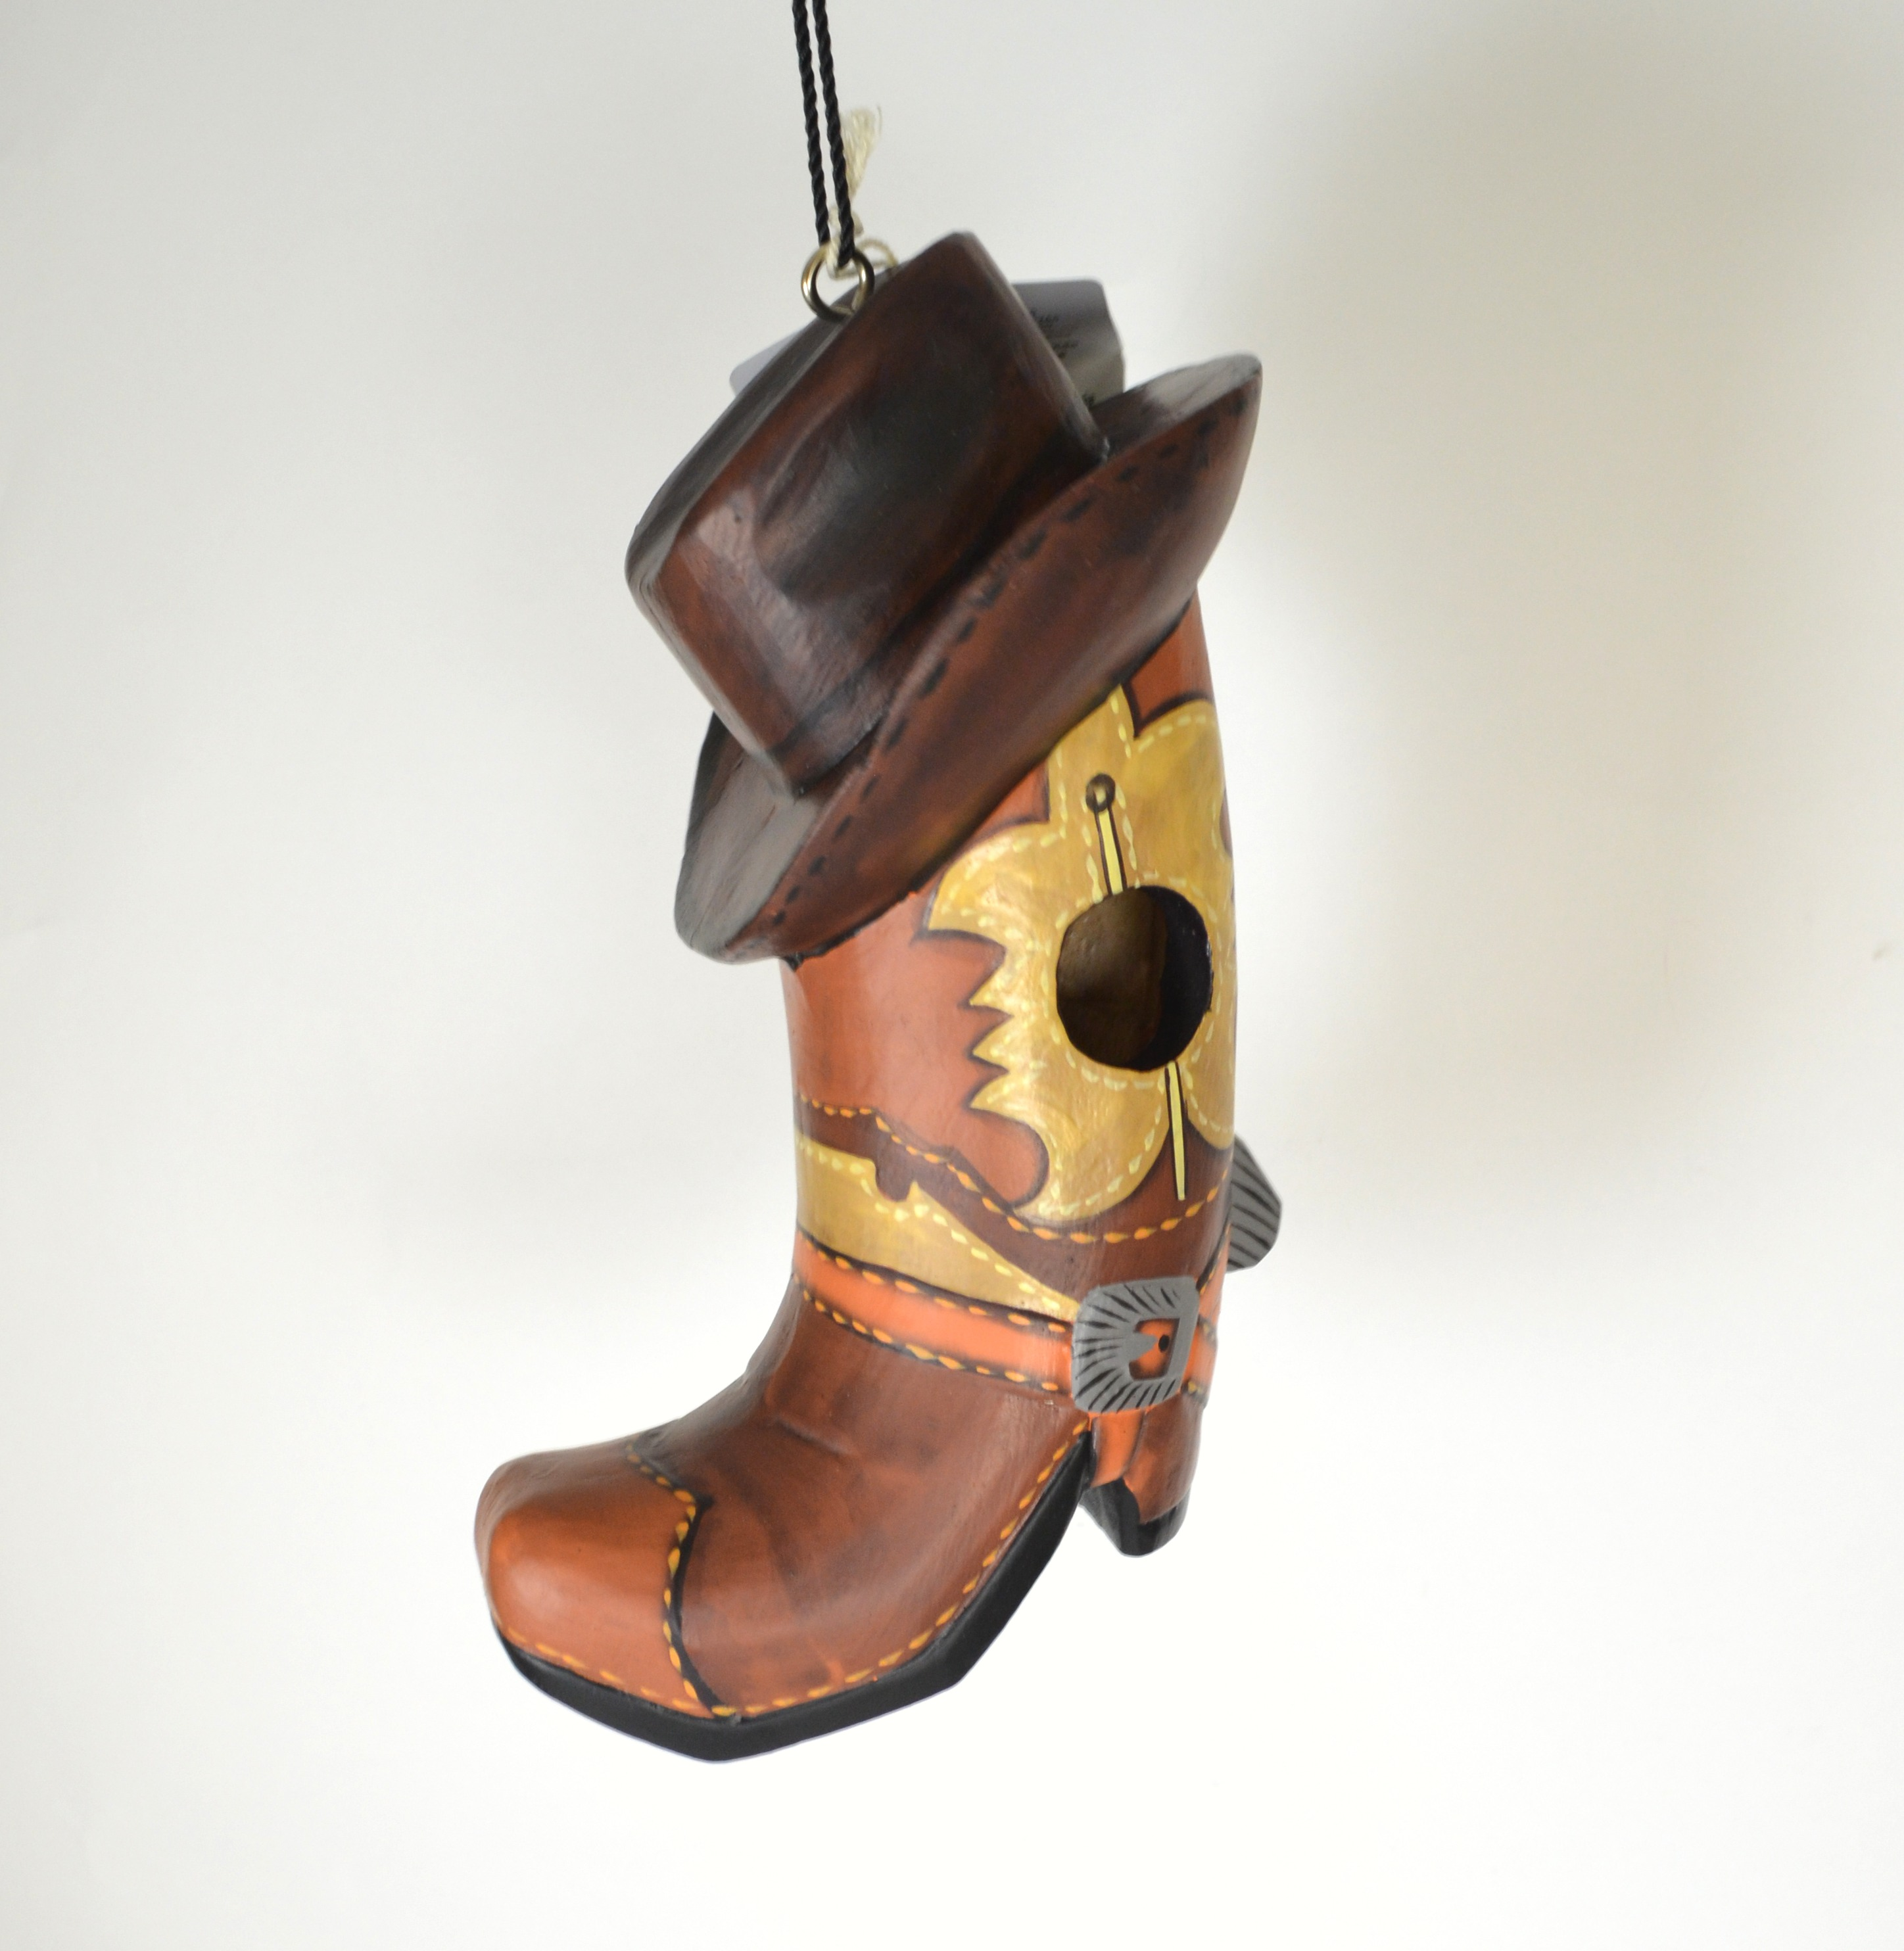 Cowboy Boot withHat Bird House